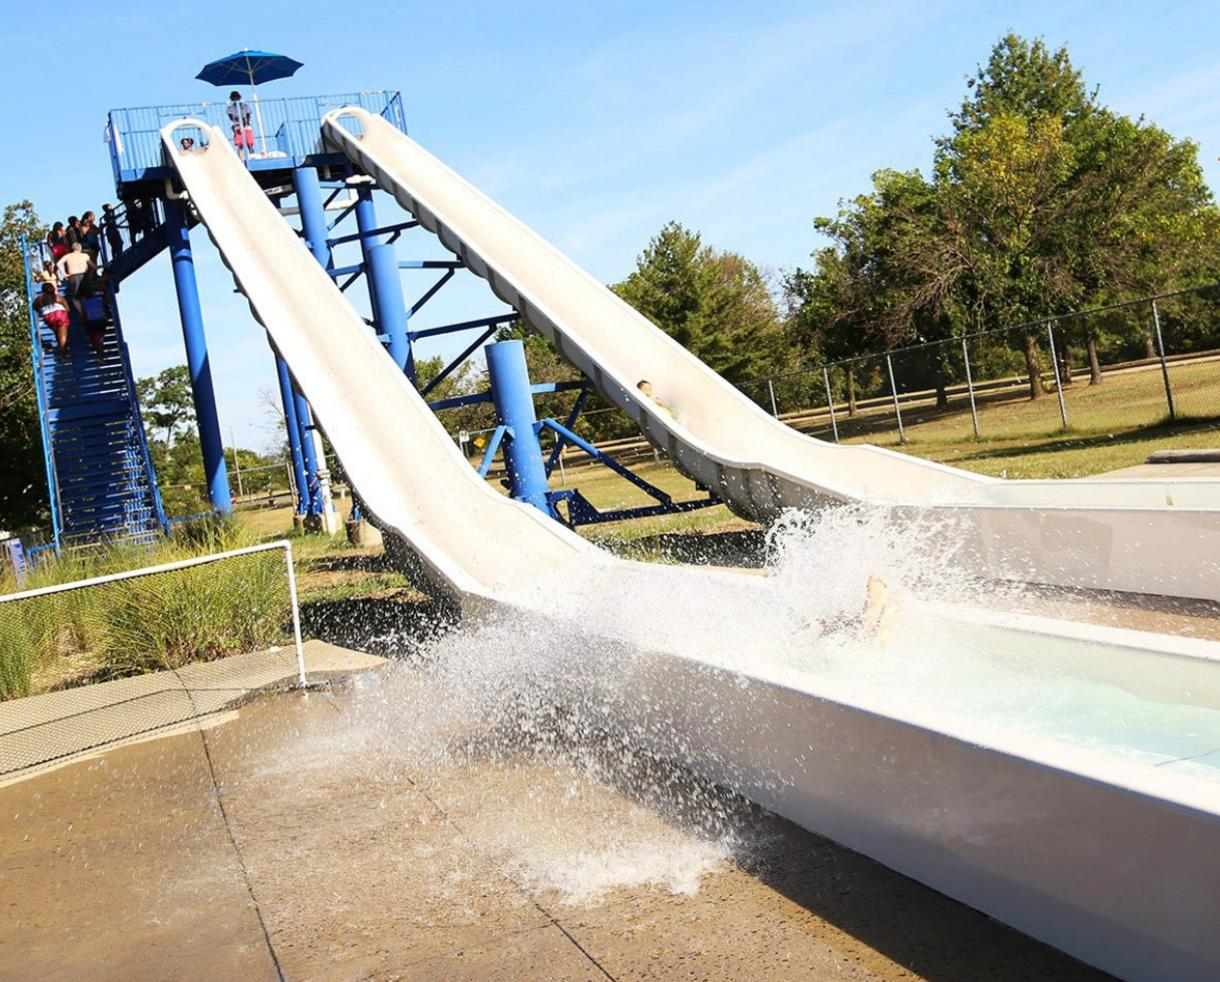 GREAT WAVES Waterpark Admission